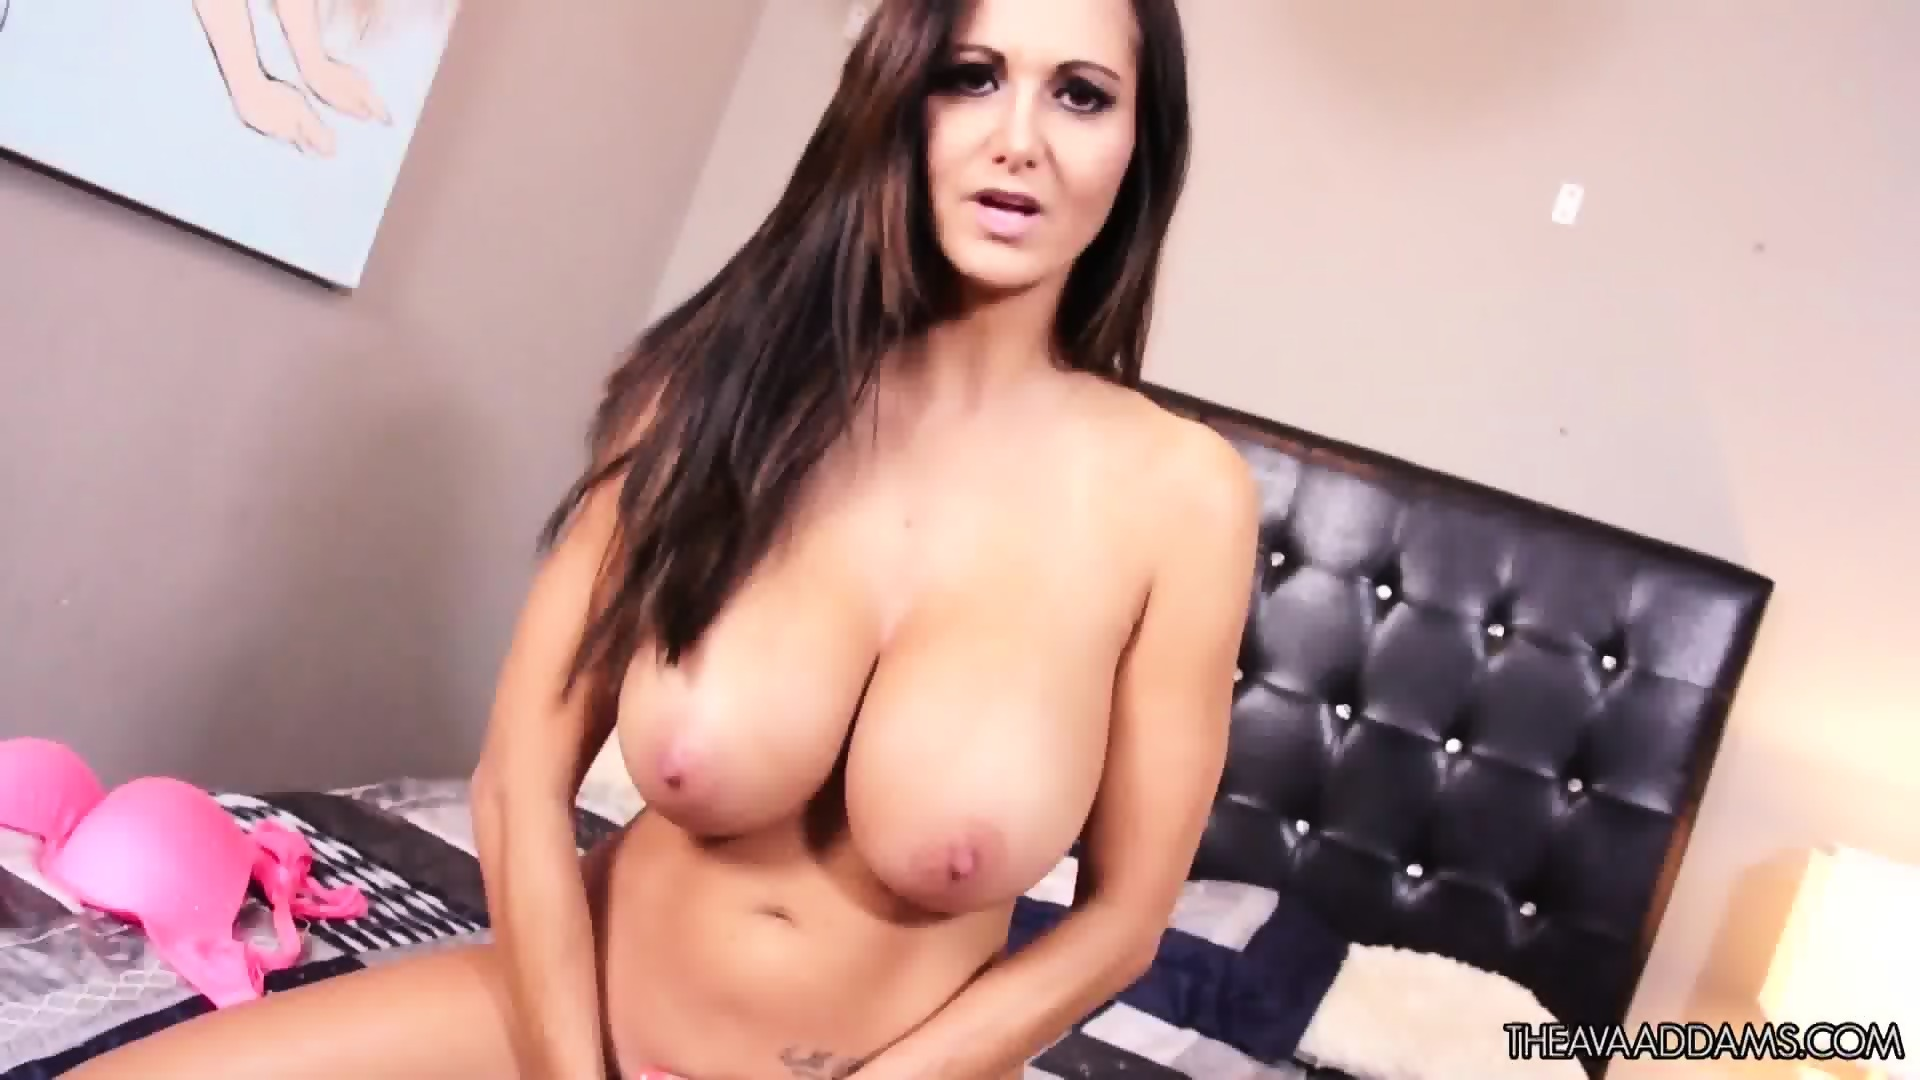 will not go. female girls suck cock load cumm on face assured, what